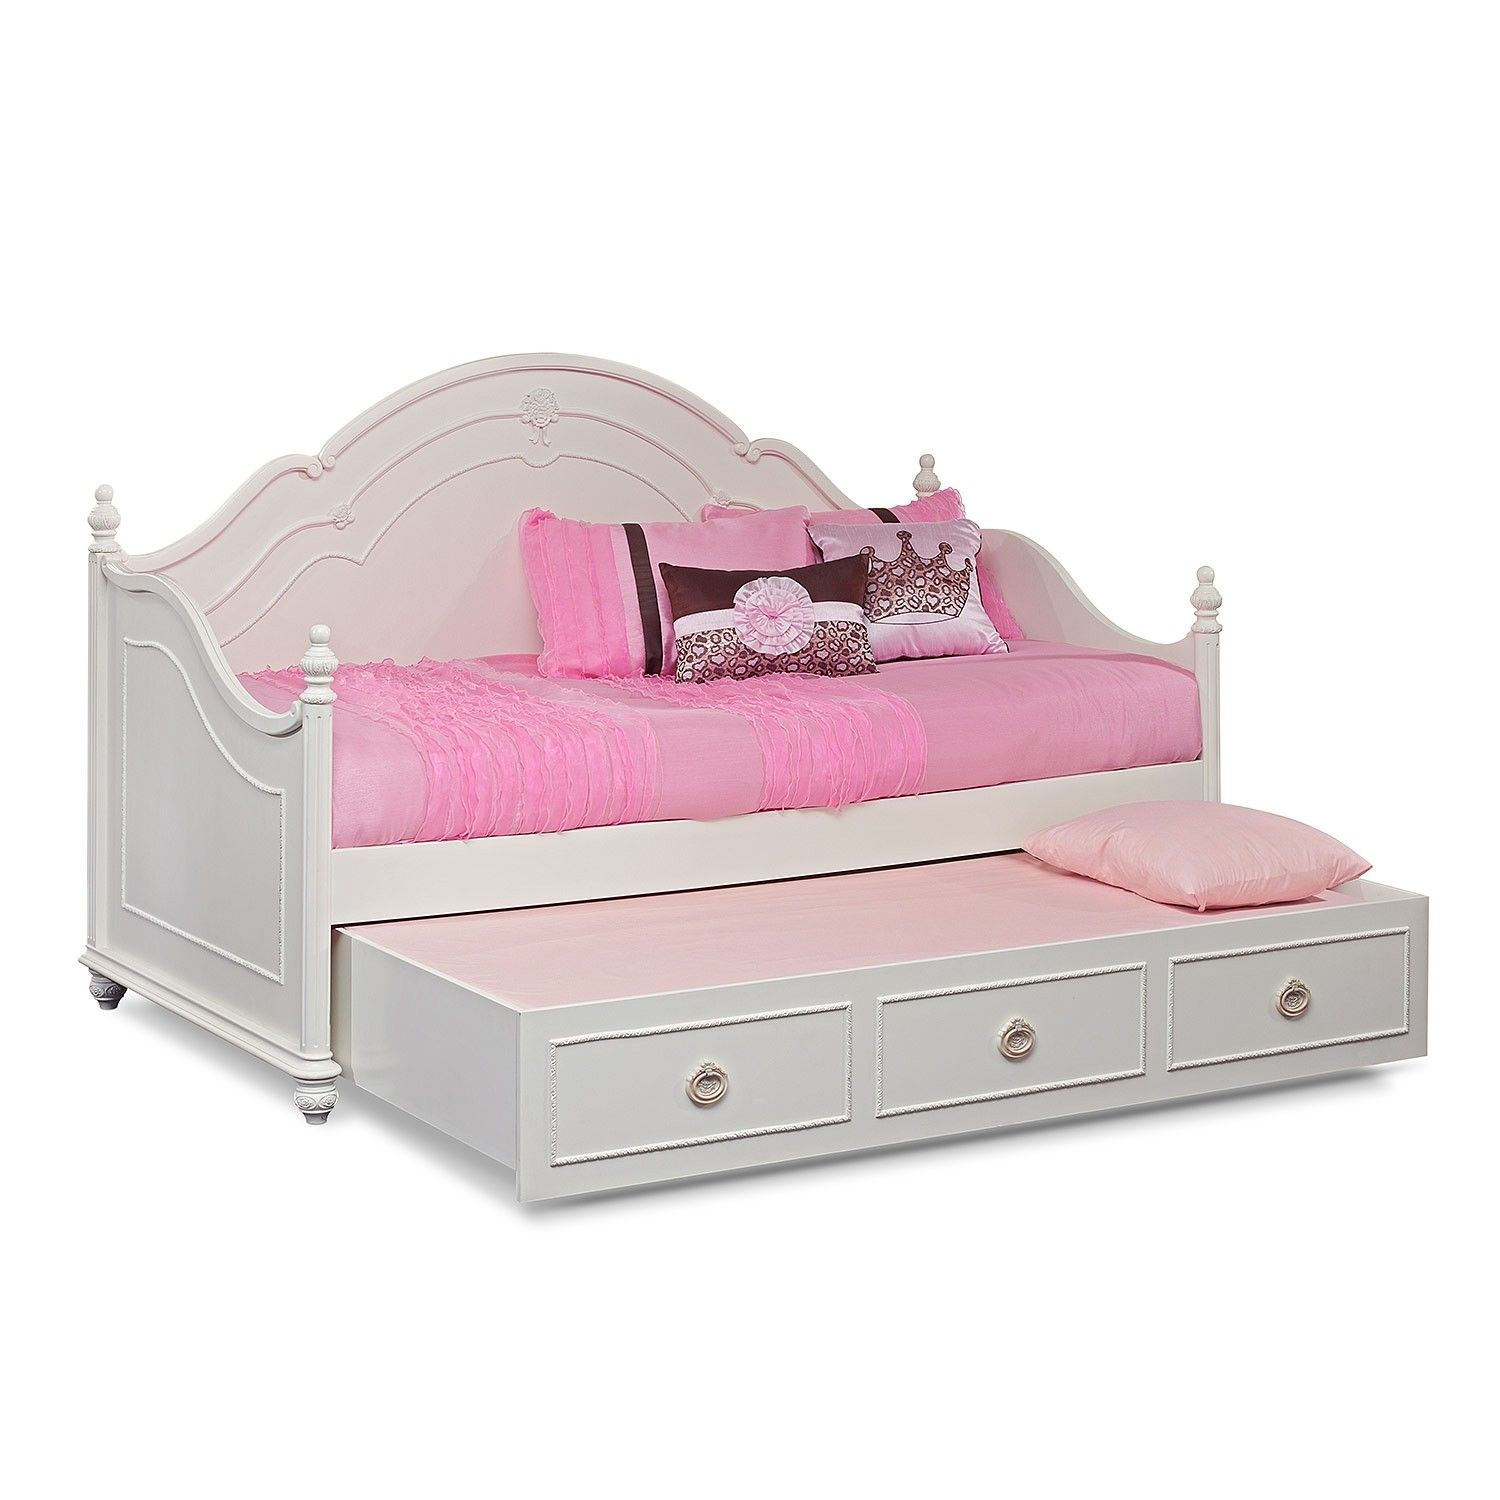 White trundle bed for girls - Find This Pin And More On Bed Rooms Bedroom Furniture White Polished Kid Trundle